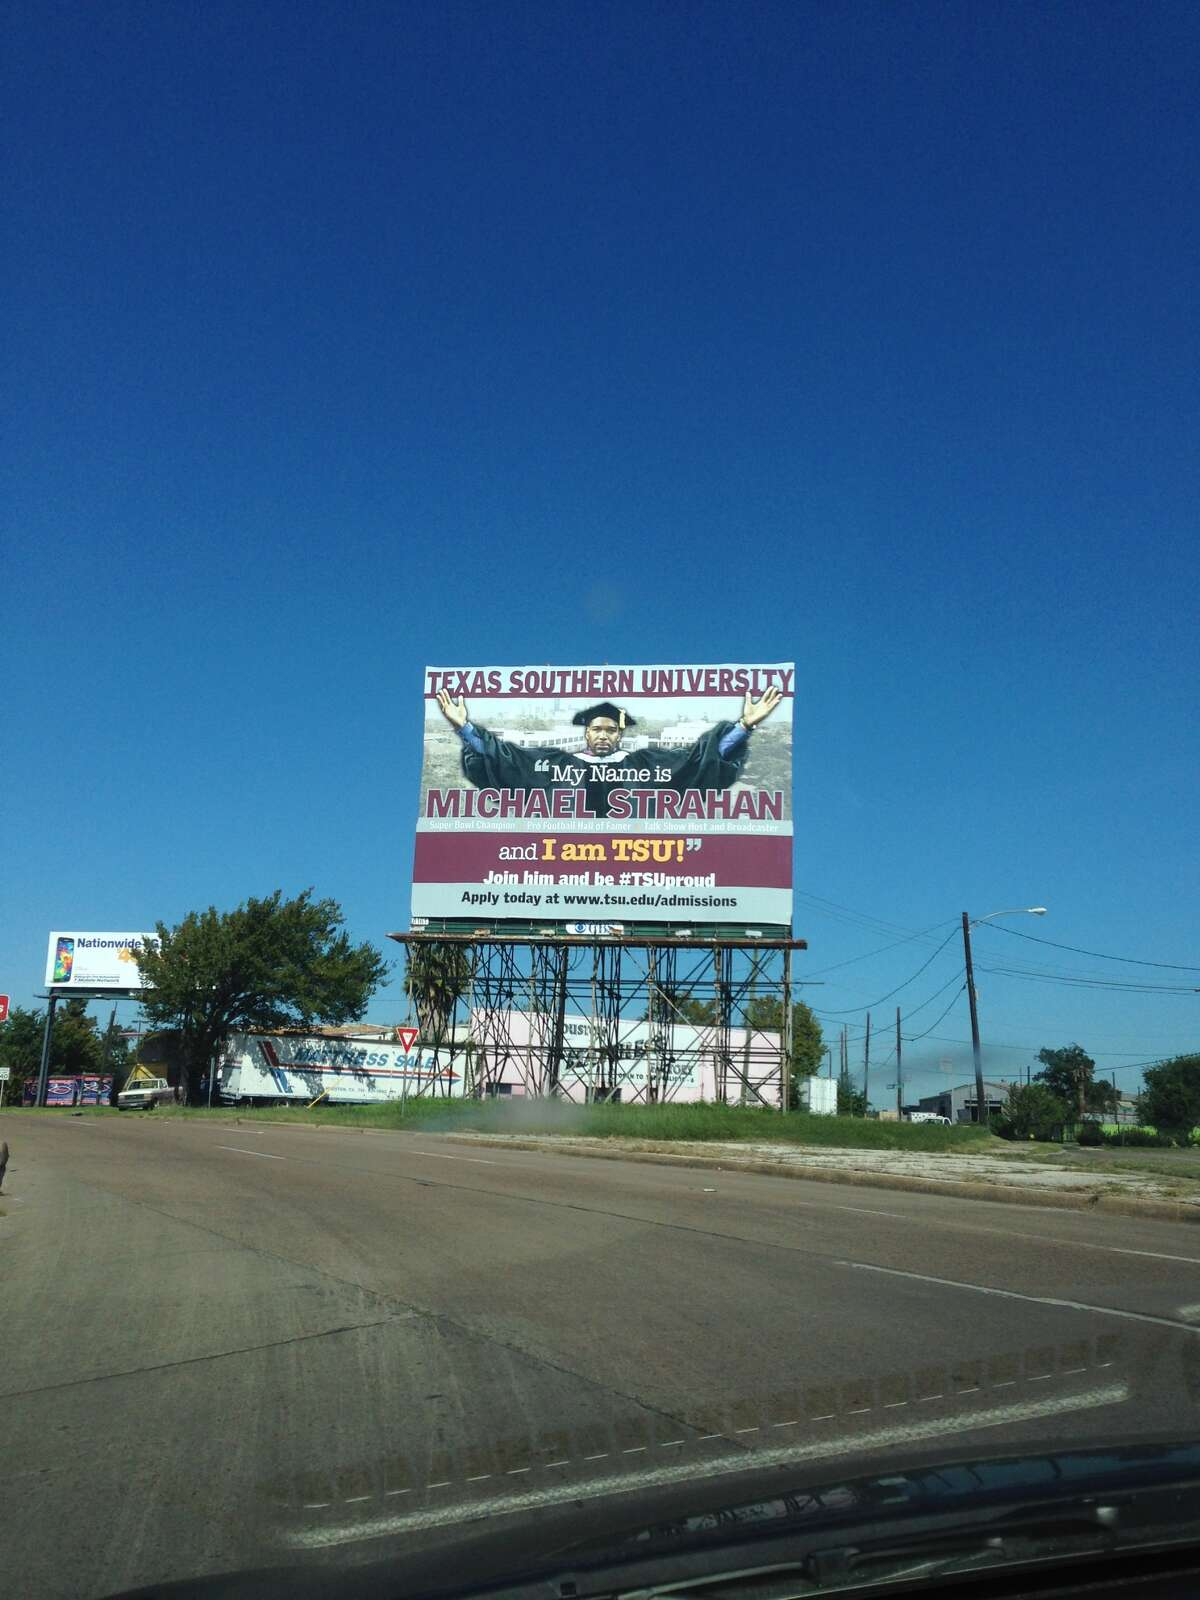 Michael Strahan, a Texas Southern University graduate and former professional football player, appears on a billboard advertising the university off Interstate 45.